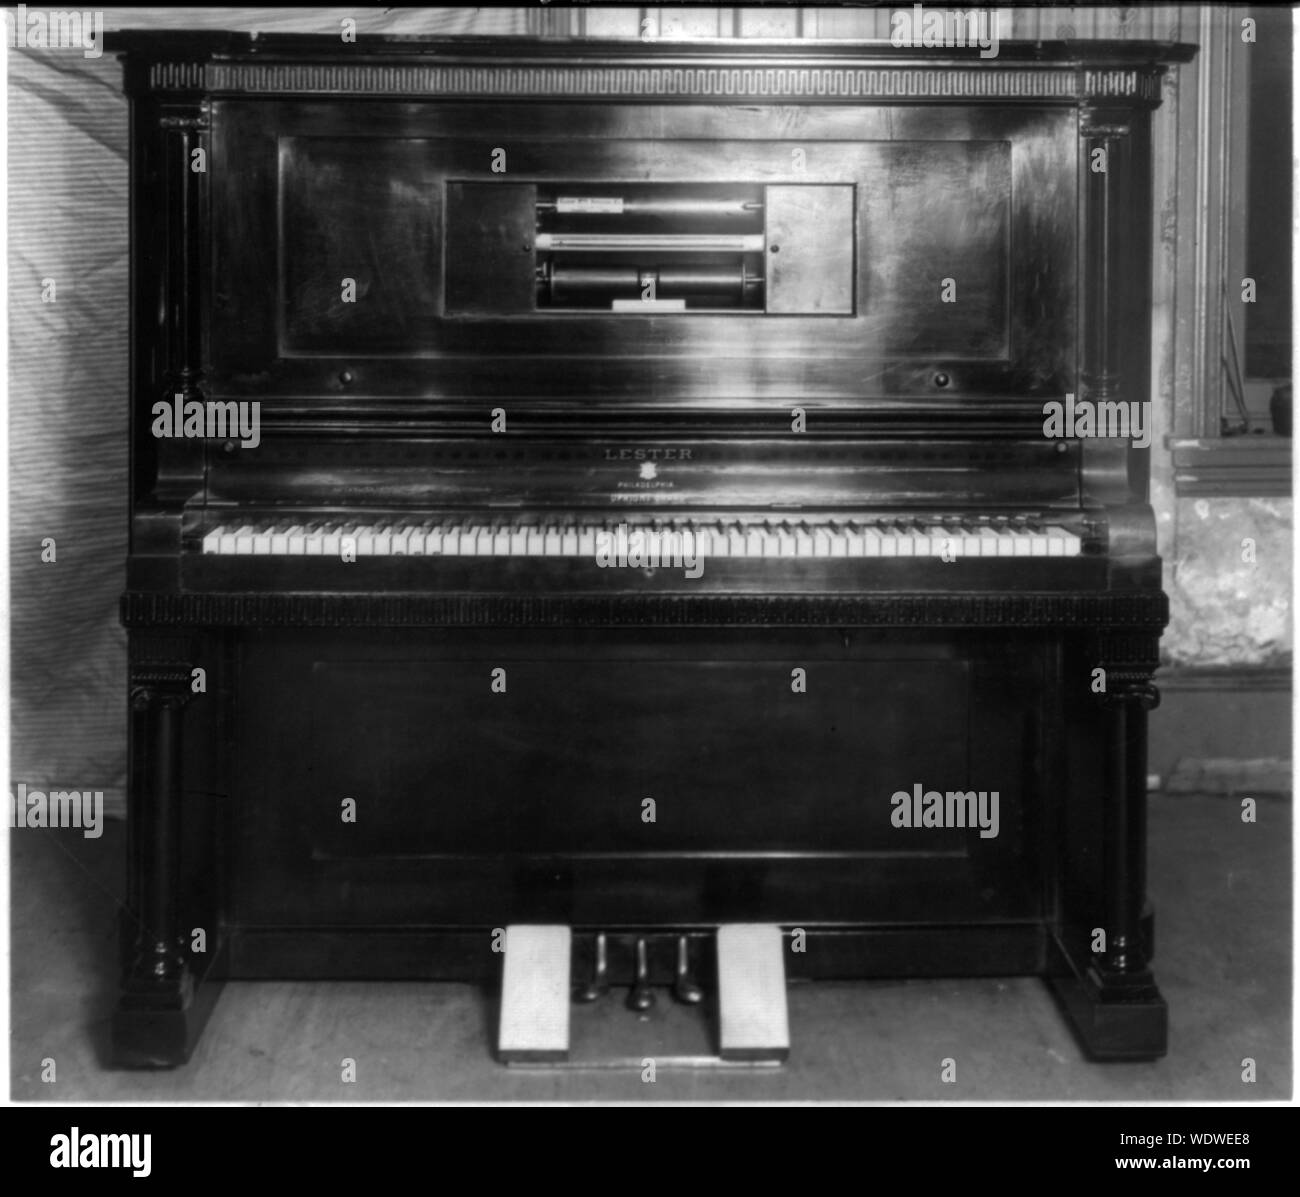 Silent Piano Stock Photos & Silent Piano Stock Images - Alamy